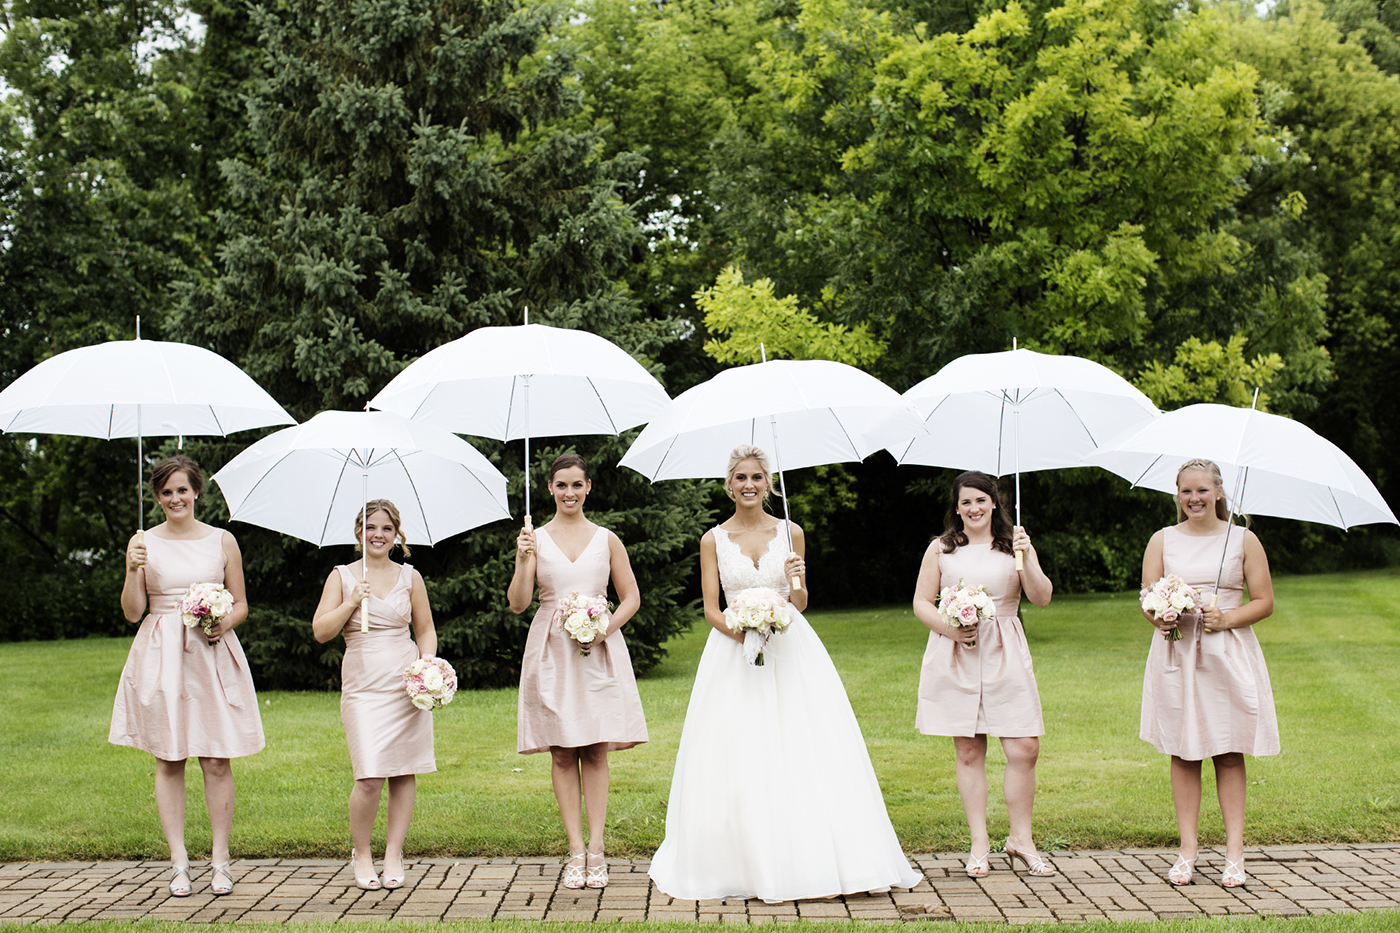 Bridesmaids with Umbrellas | Diamond Lake Lutheran Church Wedding | Minneapolis Wedding Photographer | Photos by Photogen Inc. | Eliesa Johnson